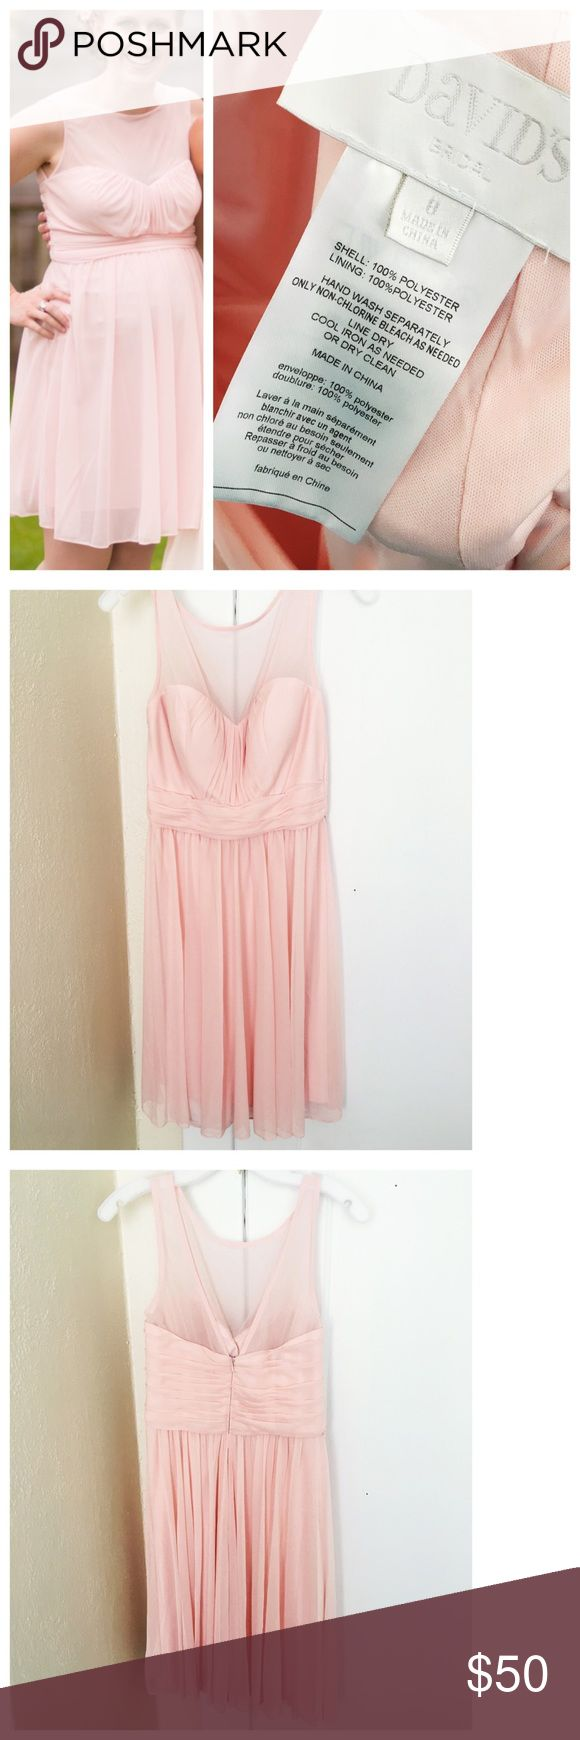 David's Bridal Pink Blush Chiffon 👗 Worn once for a wedding as a bridesmaid. Petal pink color, chiffon bridesmaid dress. Excellent condition. I as pregnant at the time and gave room for my bump, would flow flat otherwise. Not my color otherwise I'd keep it as a go to formal dress. David's Bridal Dresses Wedding